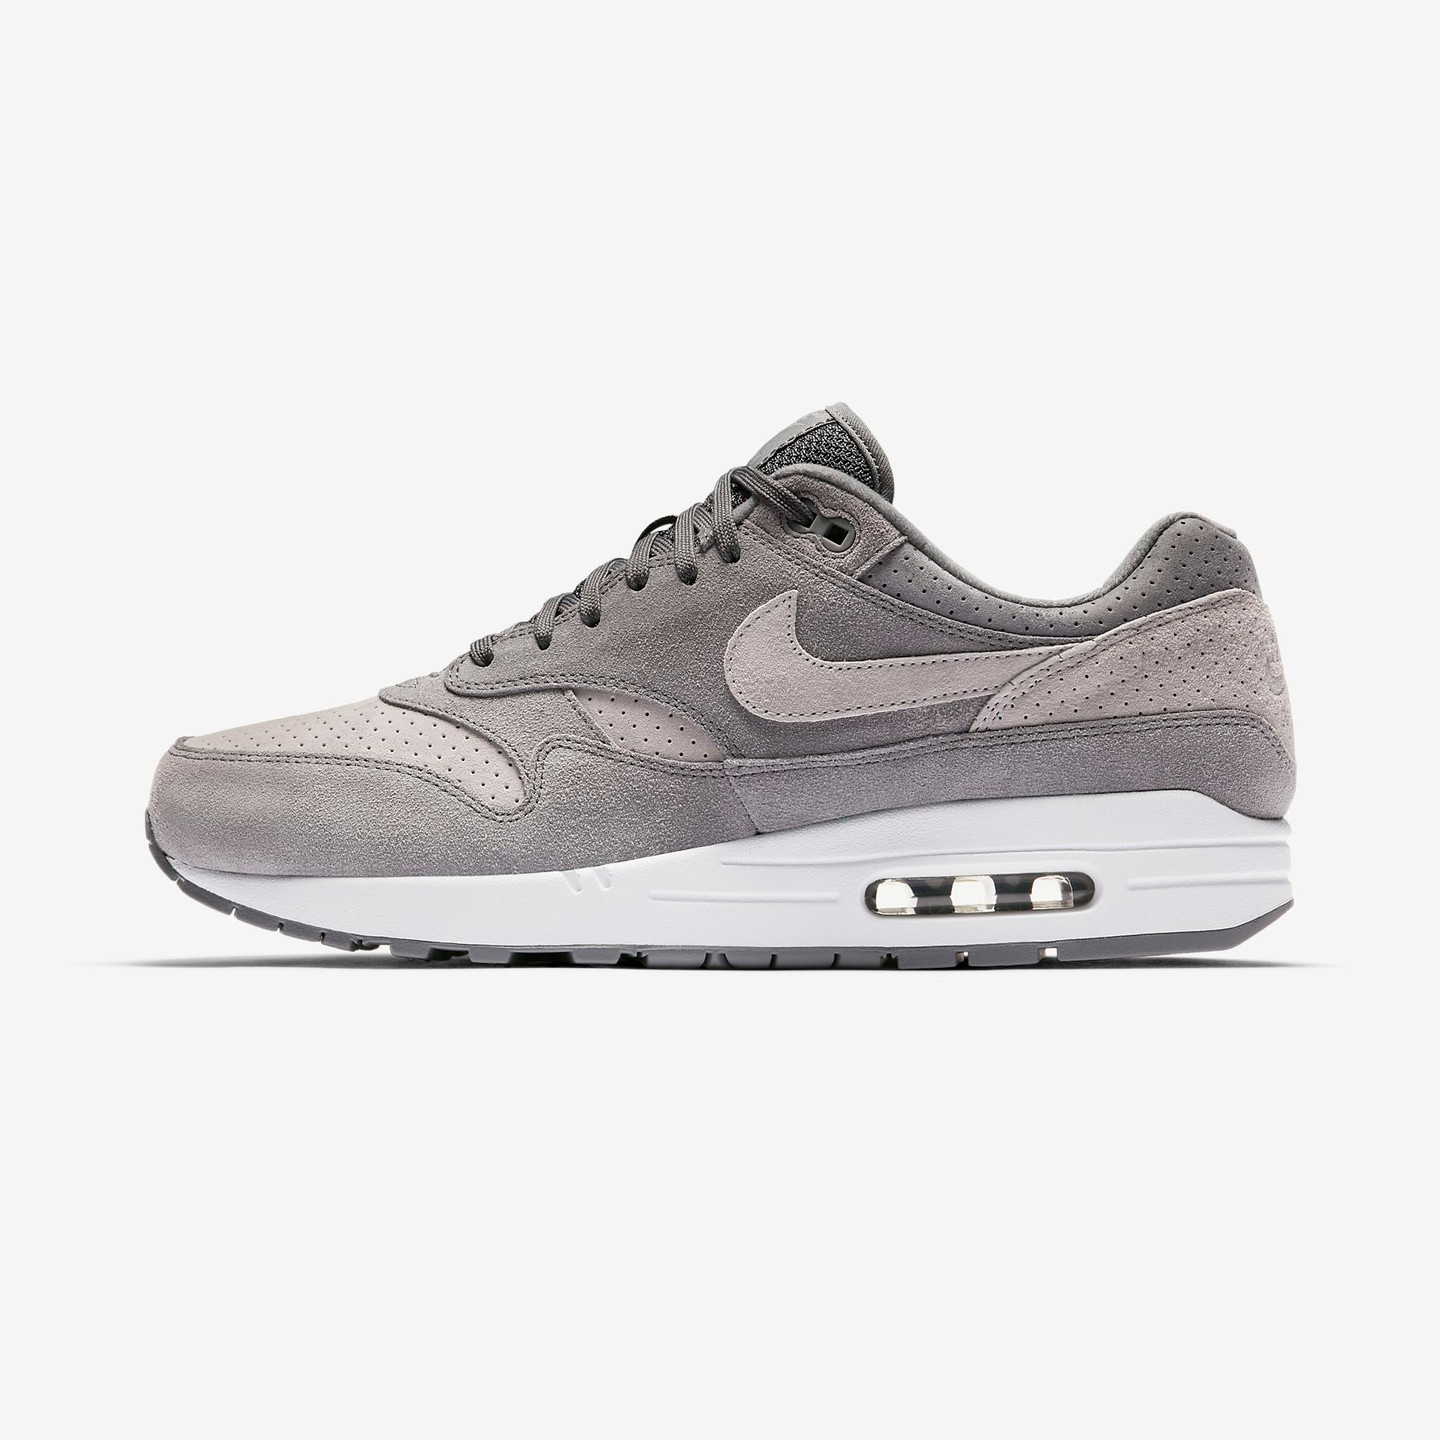 Nike Air Max 1 Premium Cool Grey / Wolf Grey / White 875844-005